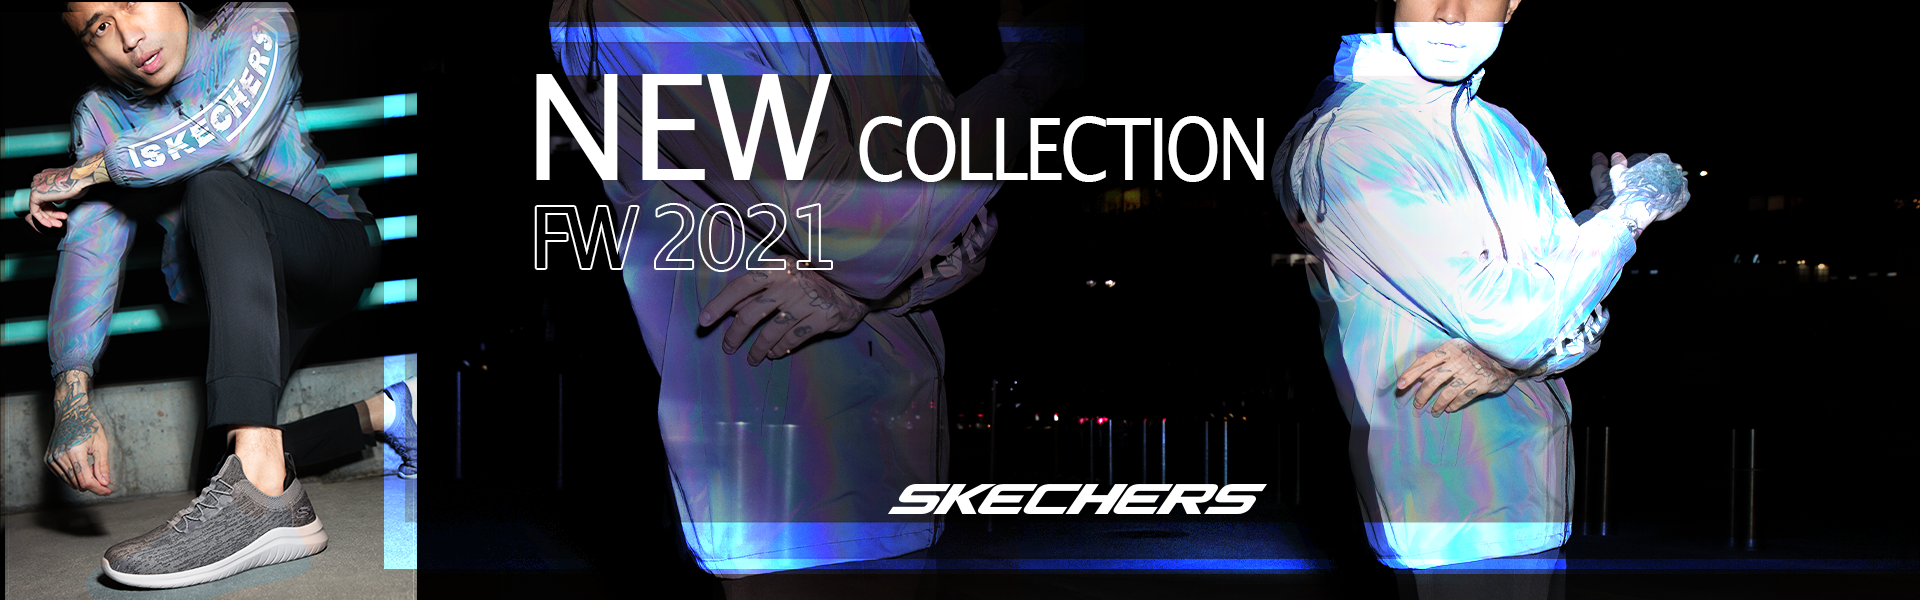 SKECHERS_FW21_NEW_COLLECTION